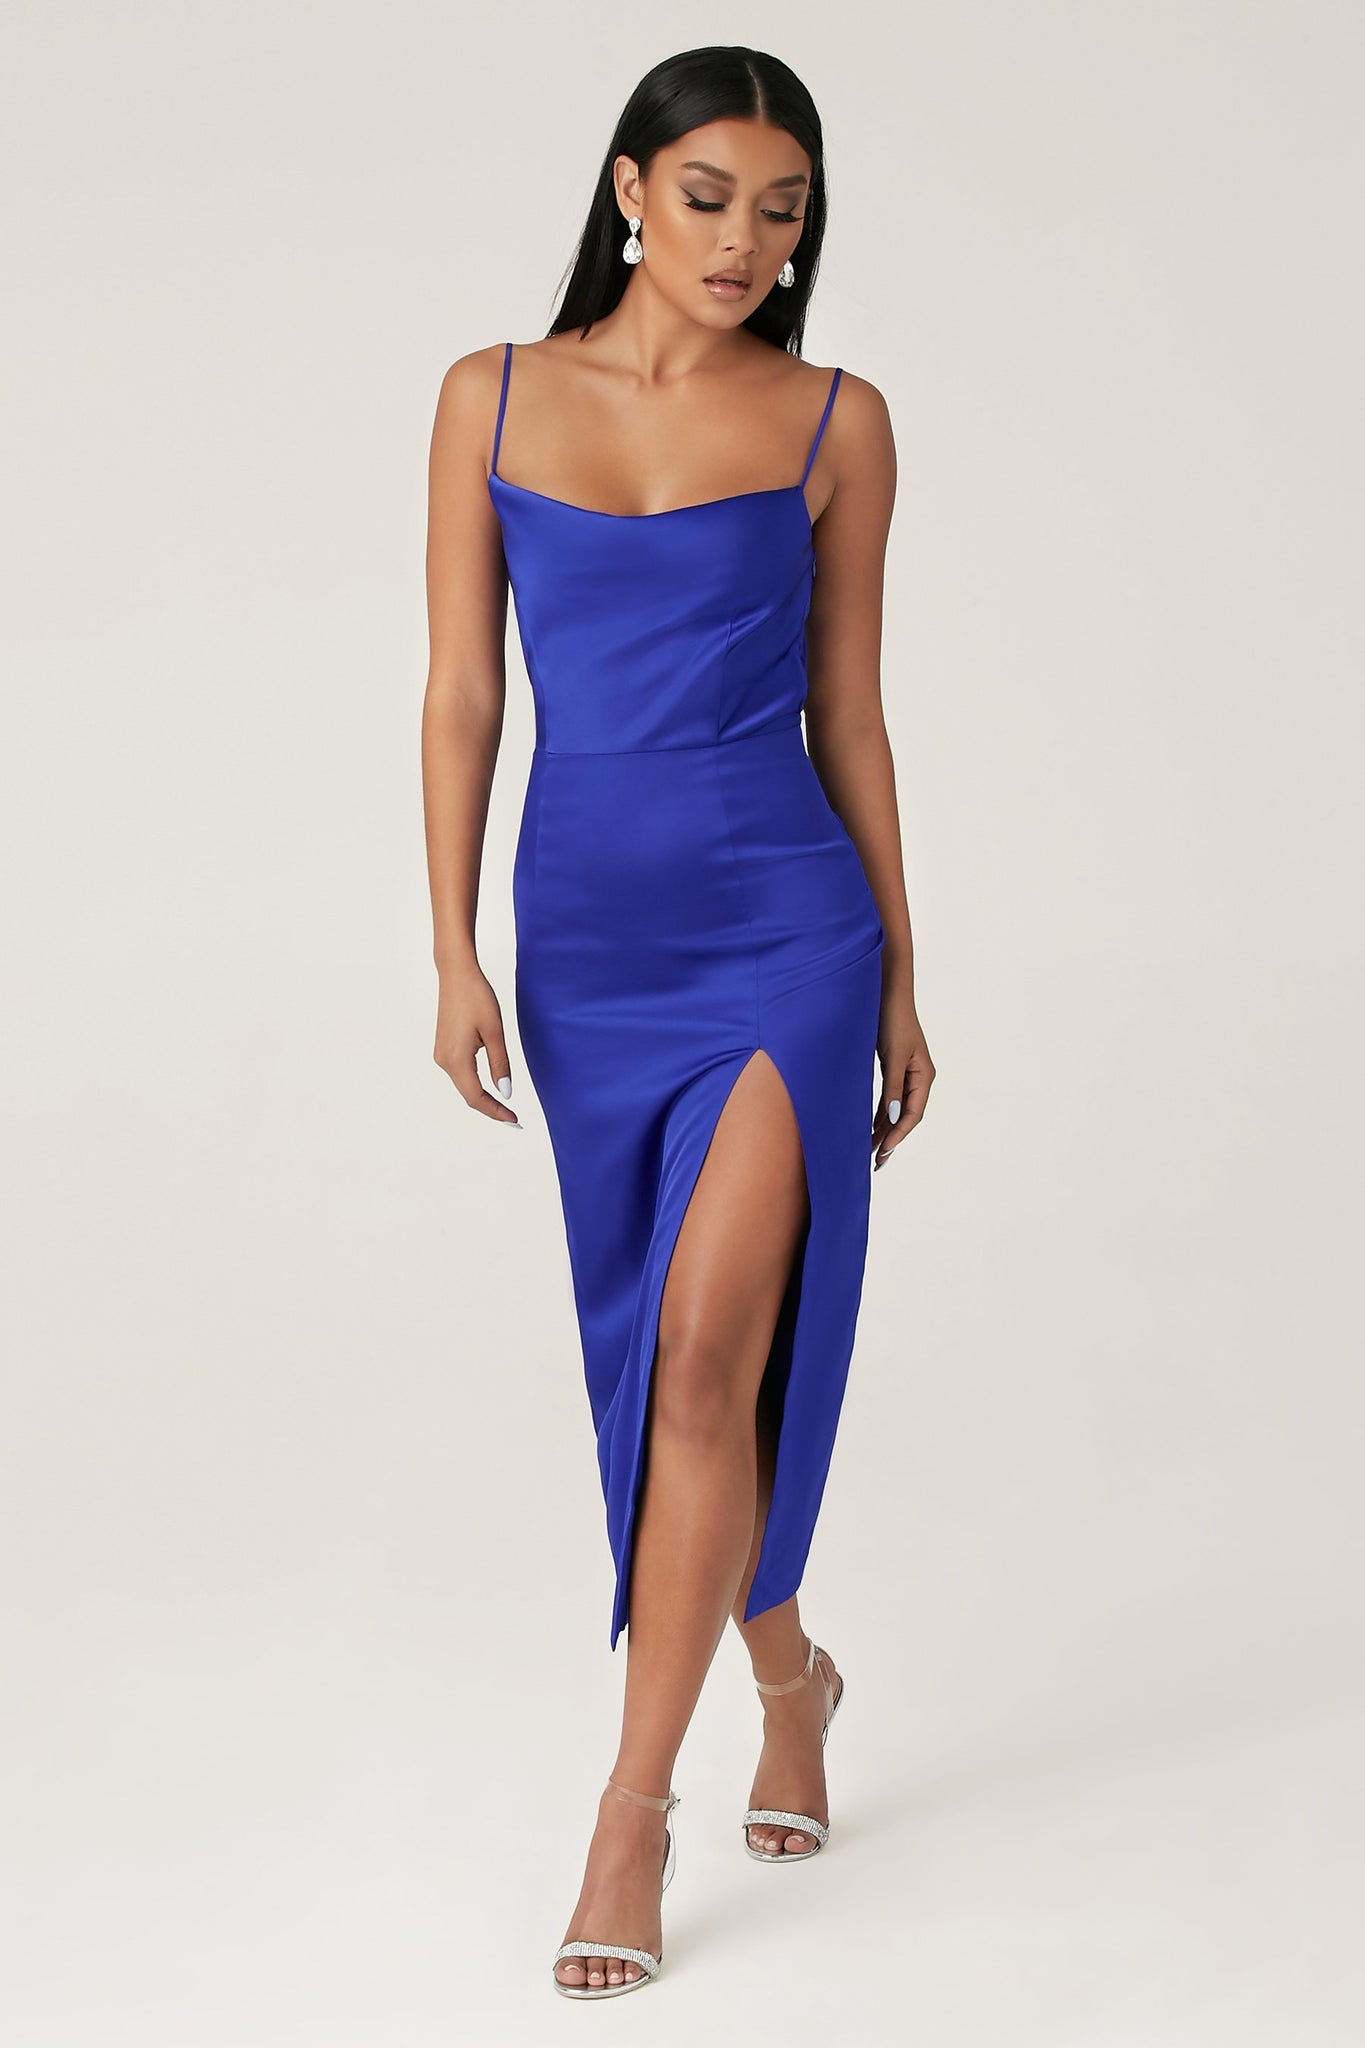 Kimberly Cowl Front Midi Dress - Bright Blue - MESHKI